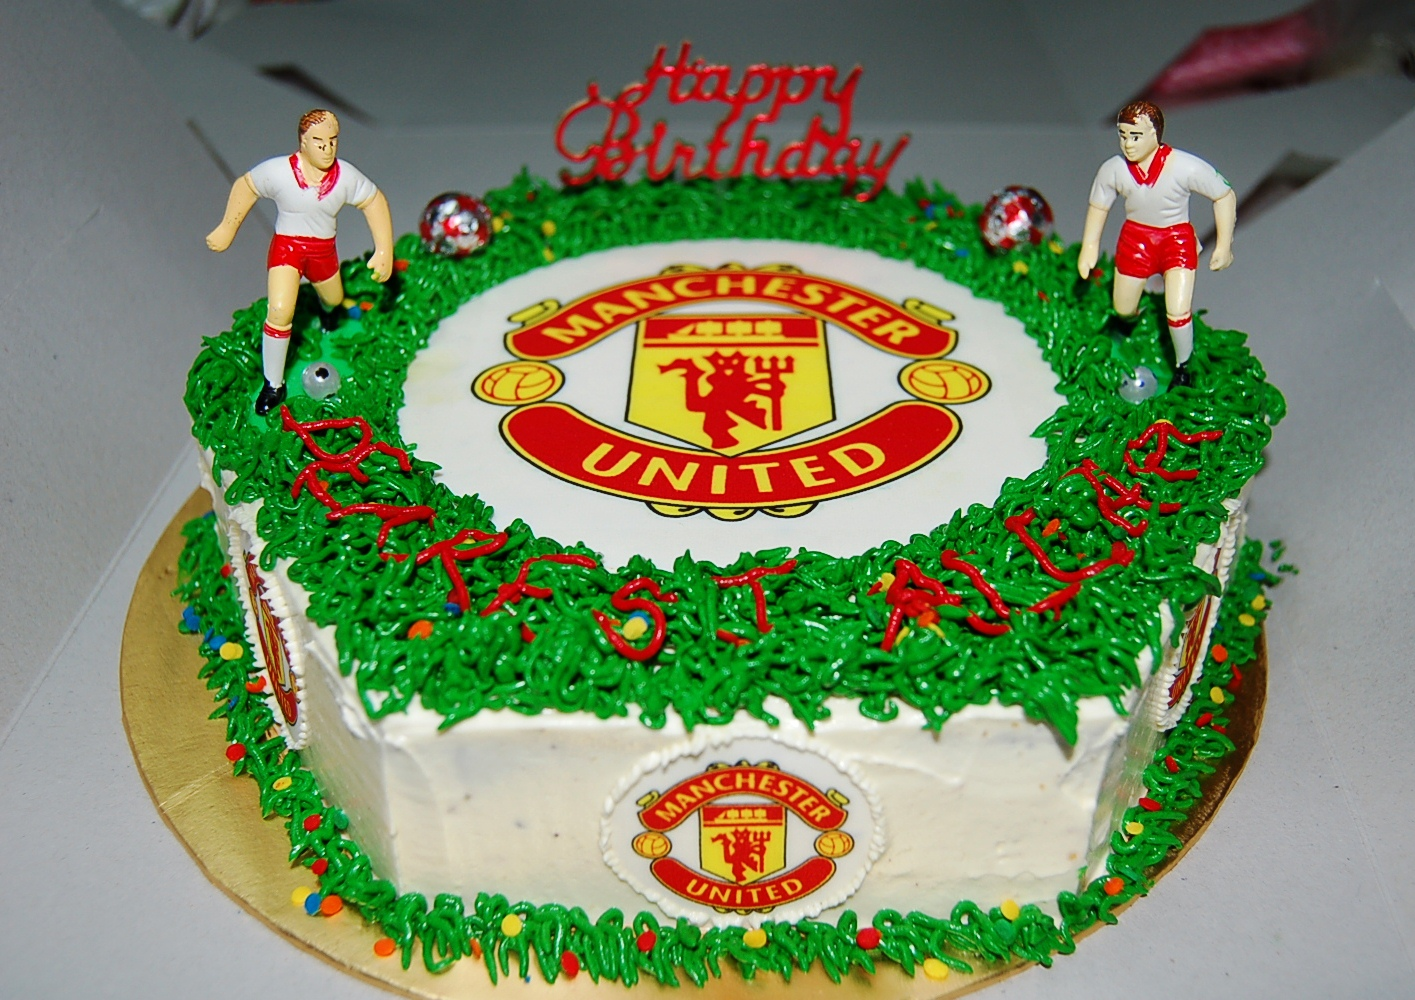 Football Themed Cakes http://mdvelegantdelicacies.blogspot.com/2012/11/football-club-themed-cake.html